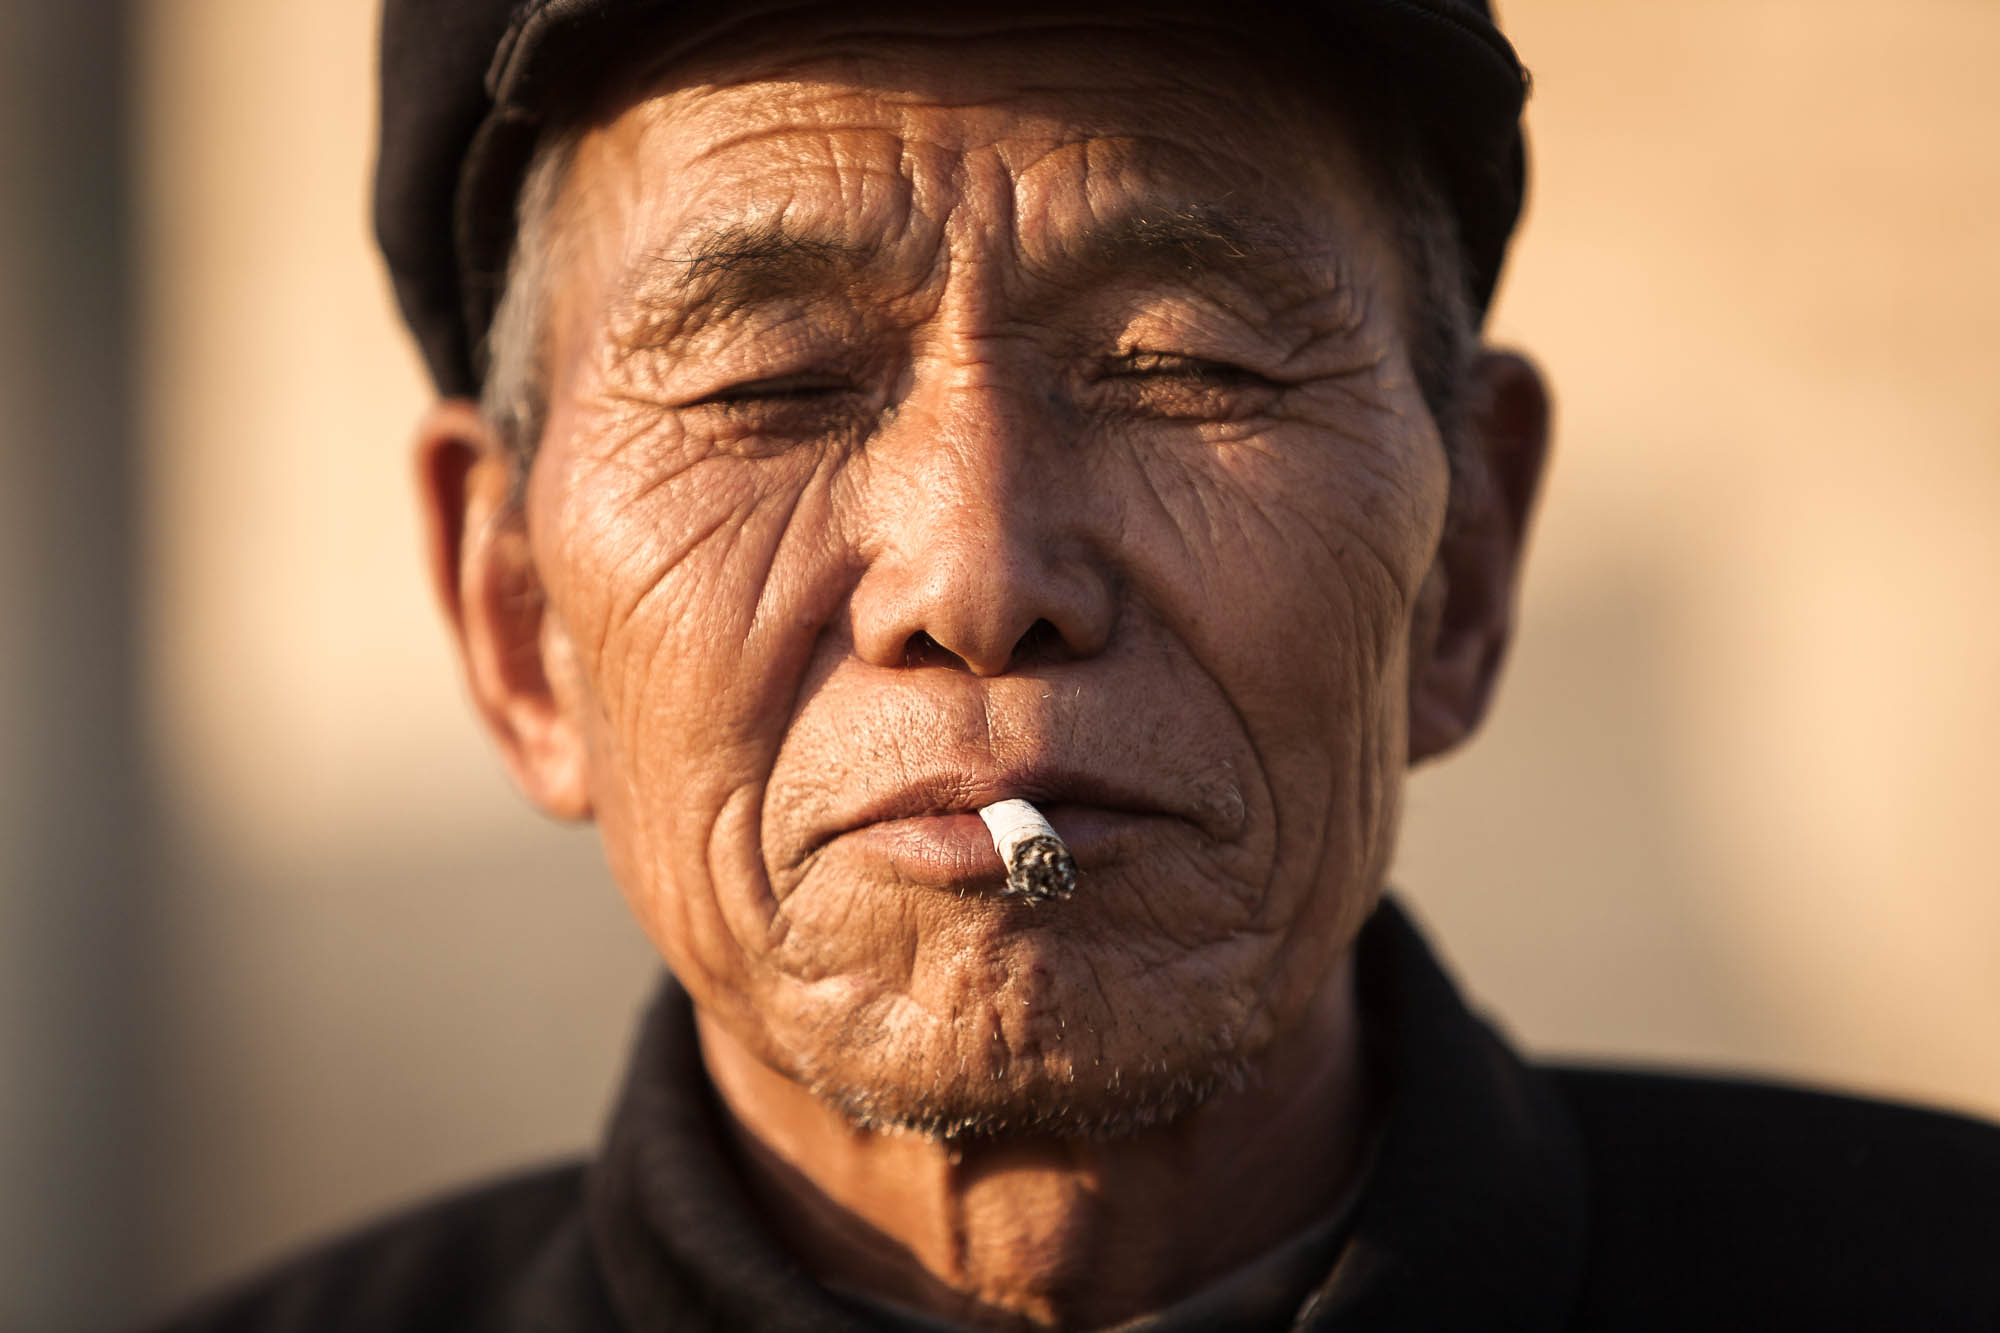 villager with cigarette